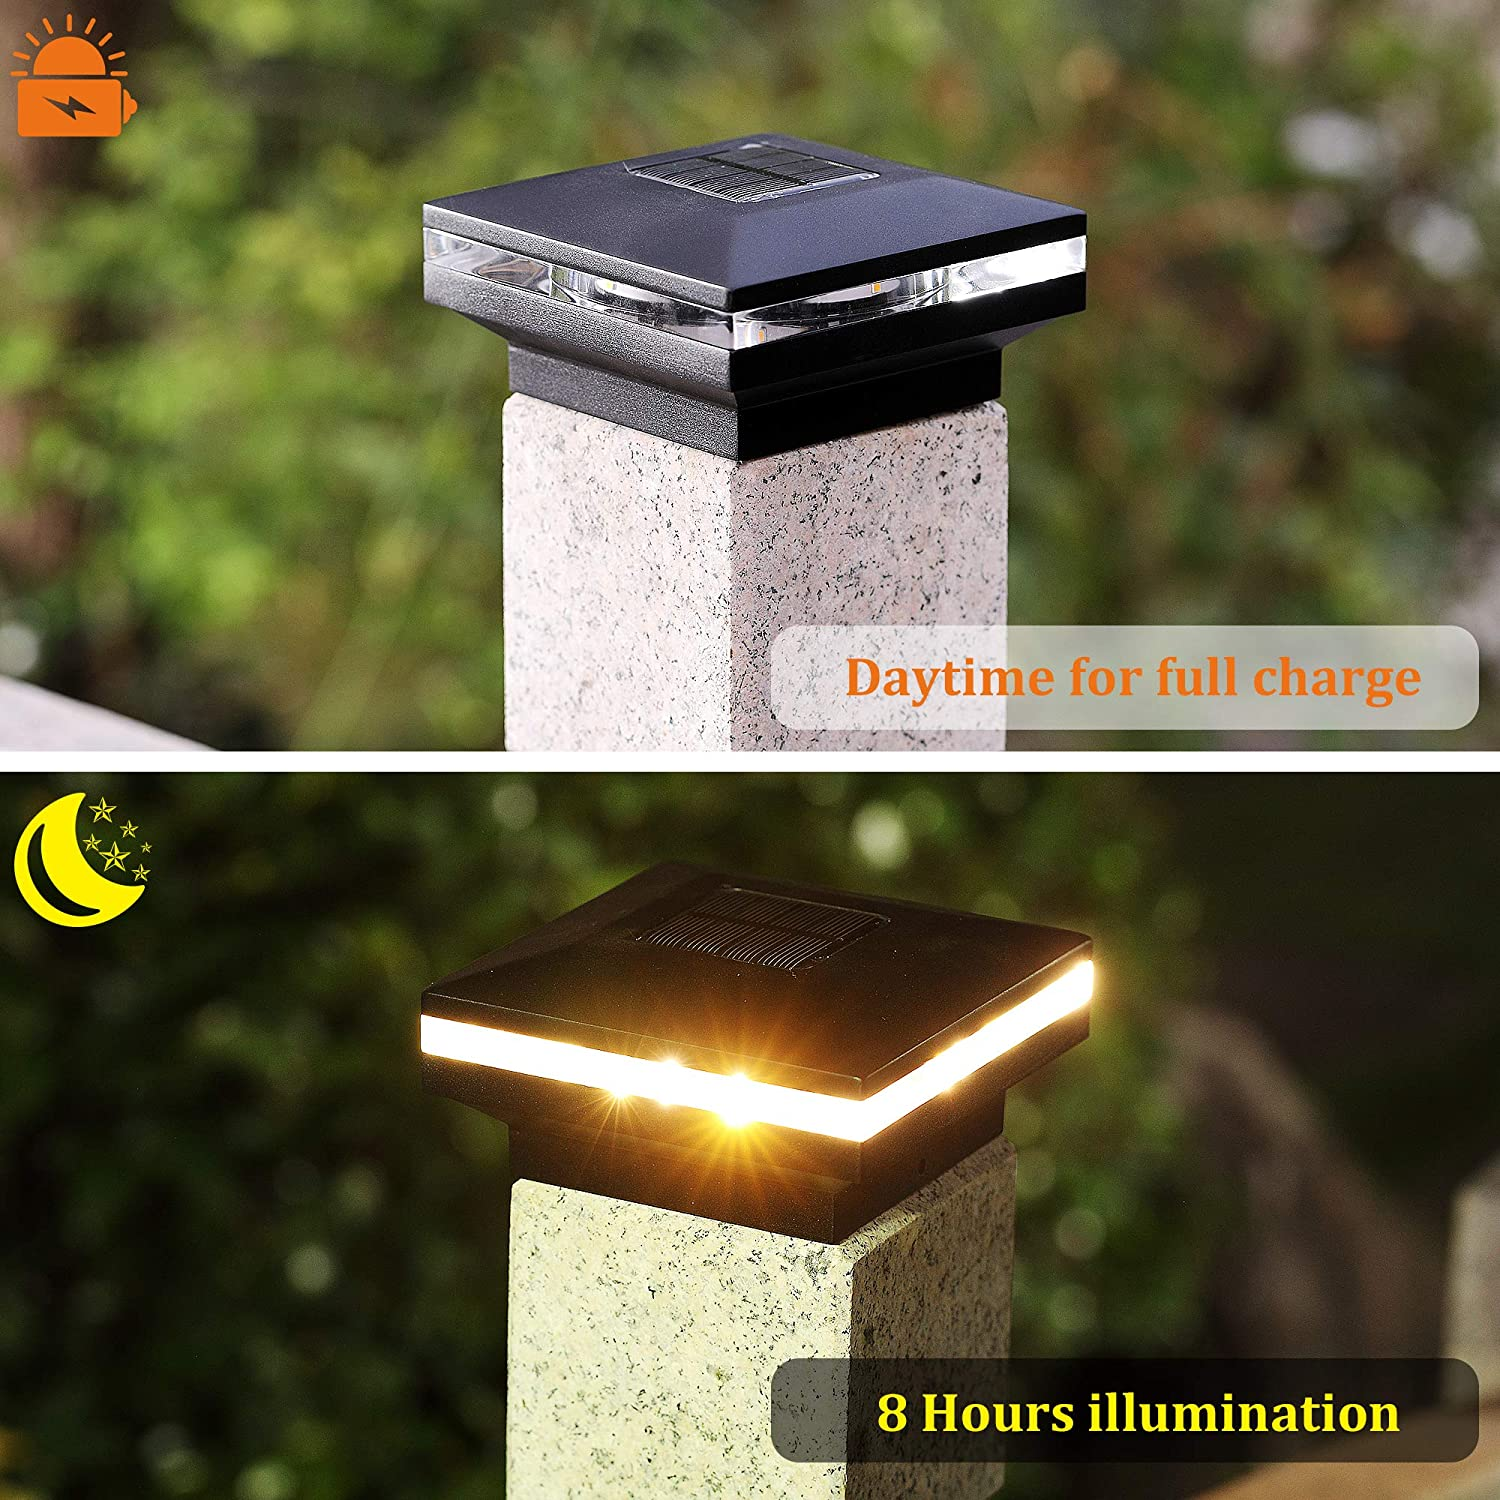 MAGGIFT 15 Lumen Solar Post Lights 5x5 or 6x6 Wooden Posts Warm White High Brightness SMD LED Lighting Solar Powered Caps Lamp Fits 4x4 2 Pack Outdoor Post Cap Light for Fence Deck or Patio